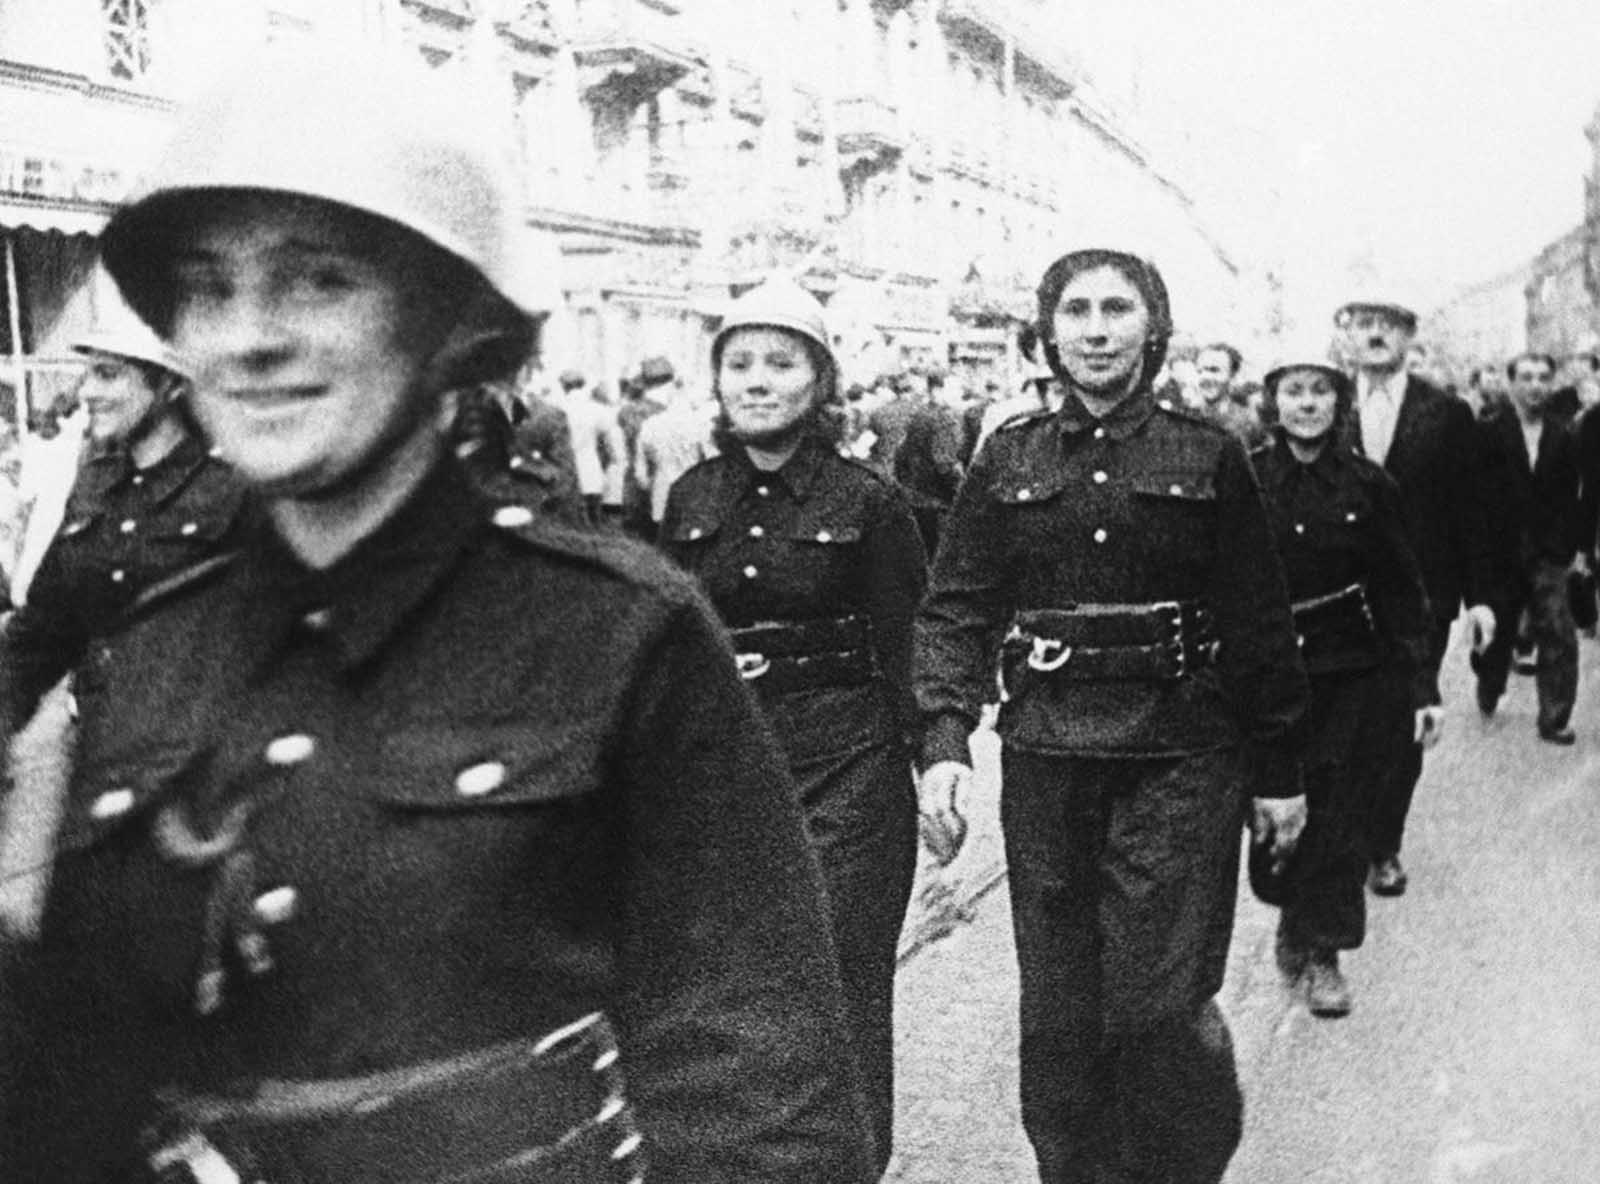 Steel-helmeted, uniformed Polish women march through the streets of Warsaw to aid in defense of their capital after German troops had started their invasion of Poland, on September 16, 1939.